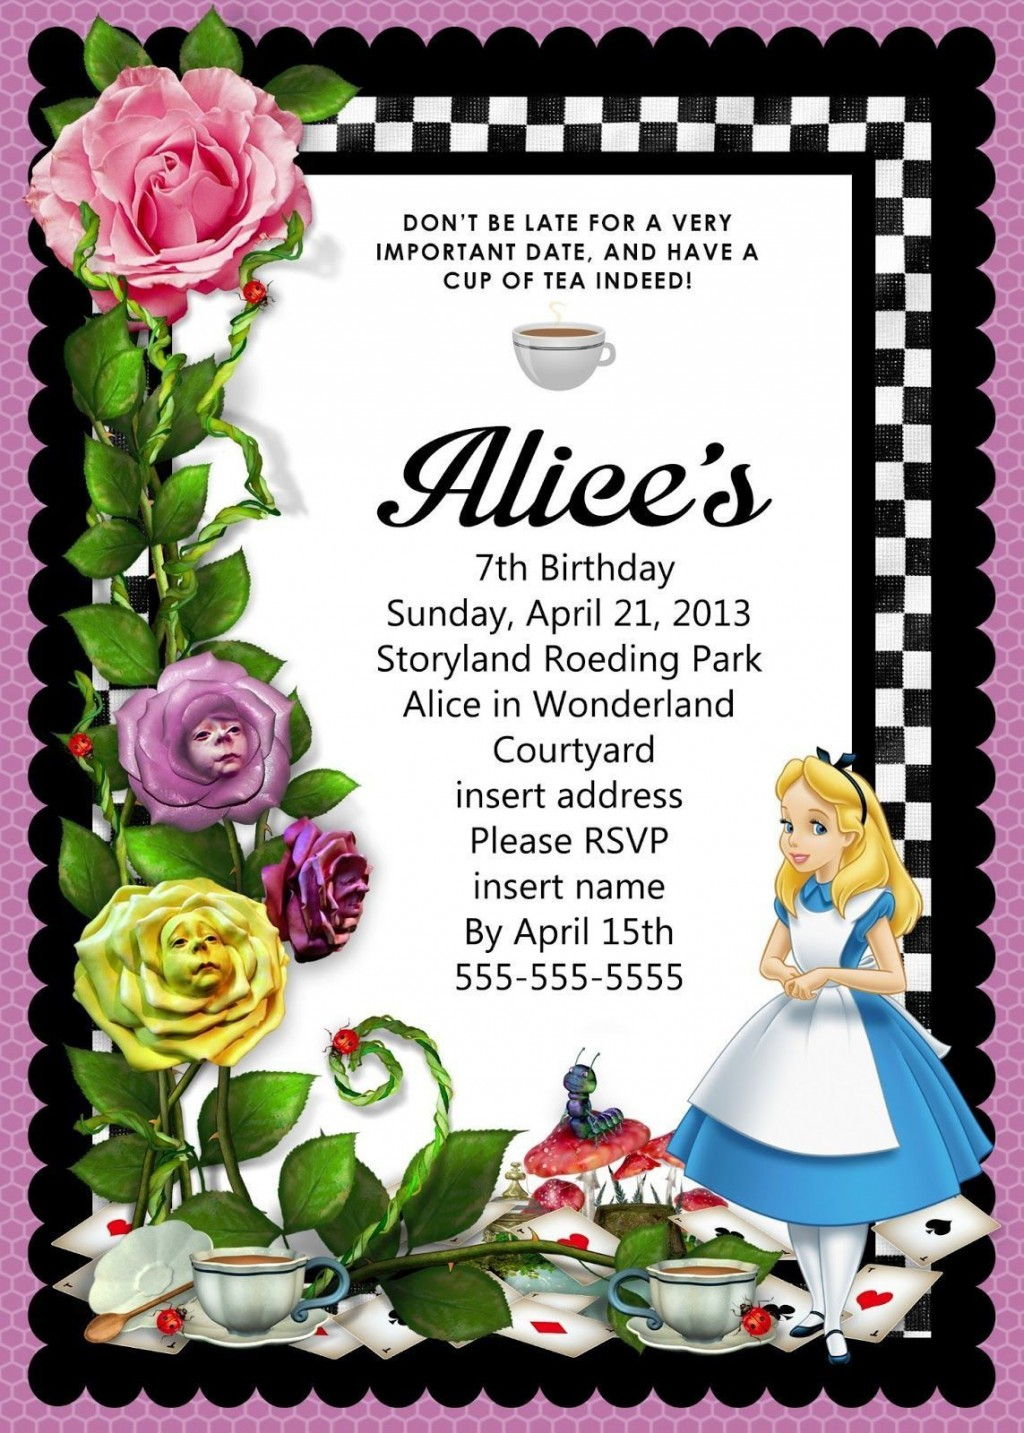 008 Awesome Alice In Wonderland Birthday Party Invitation Printable Free Highest Clarity Large